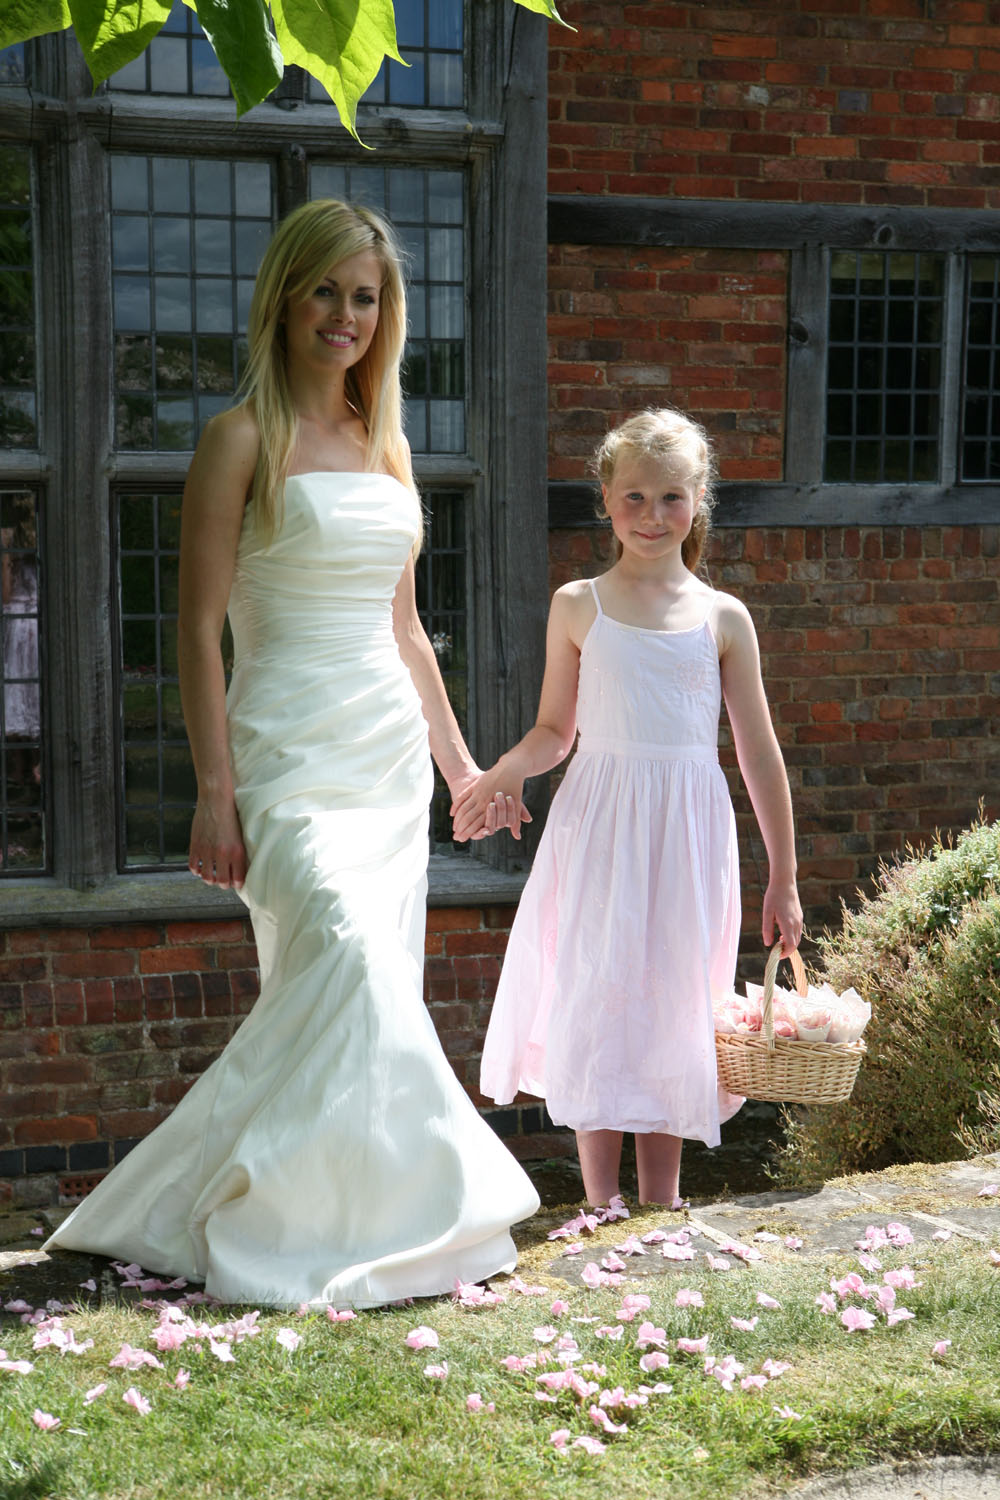 Flower Girl Baskets - the bride with her flower girl